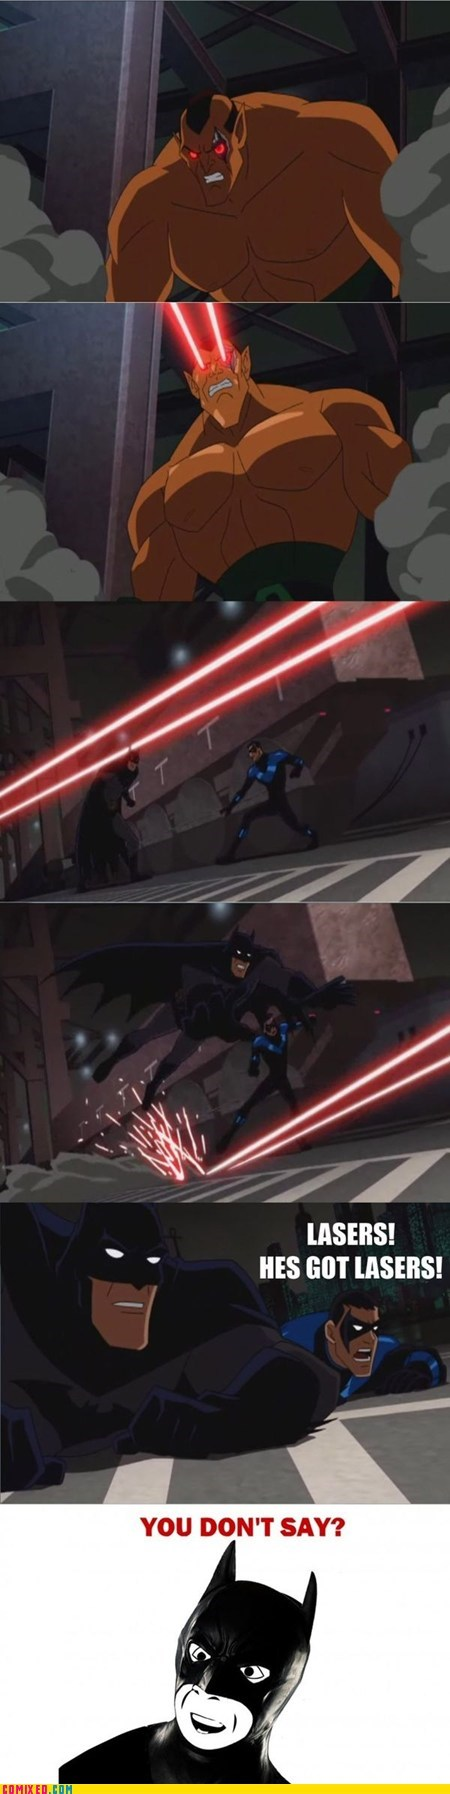 Saturday Morning Cartoons captain obvious nightwing lasers batman - 6865622528